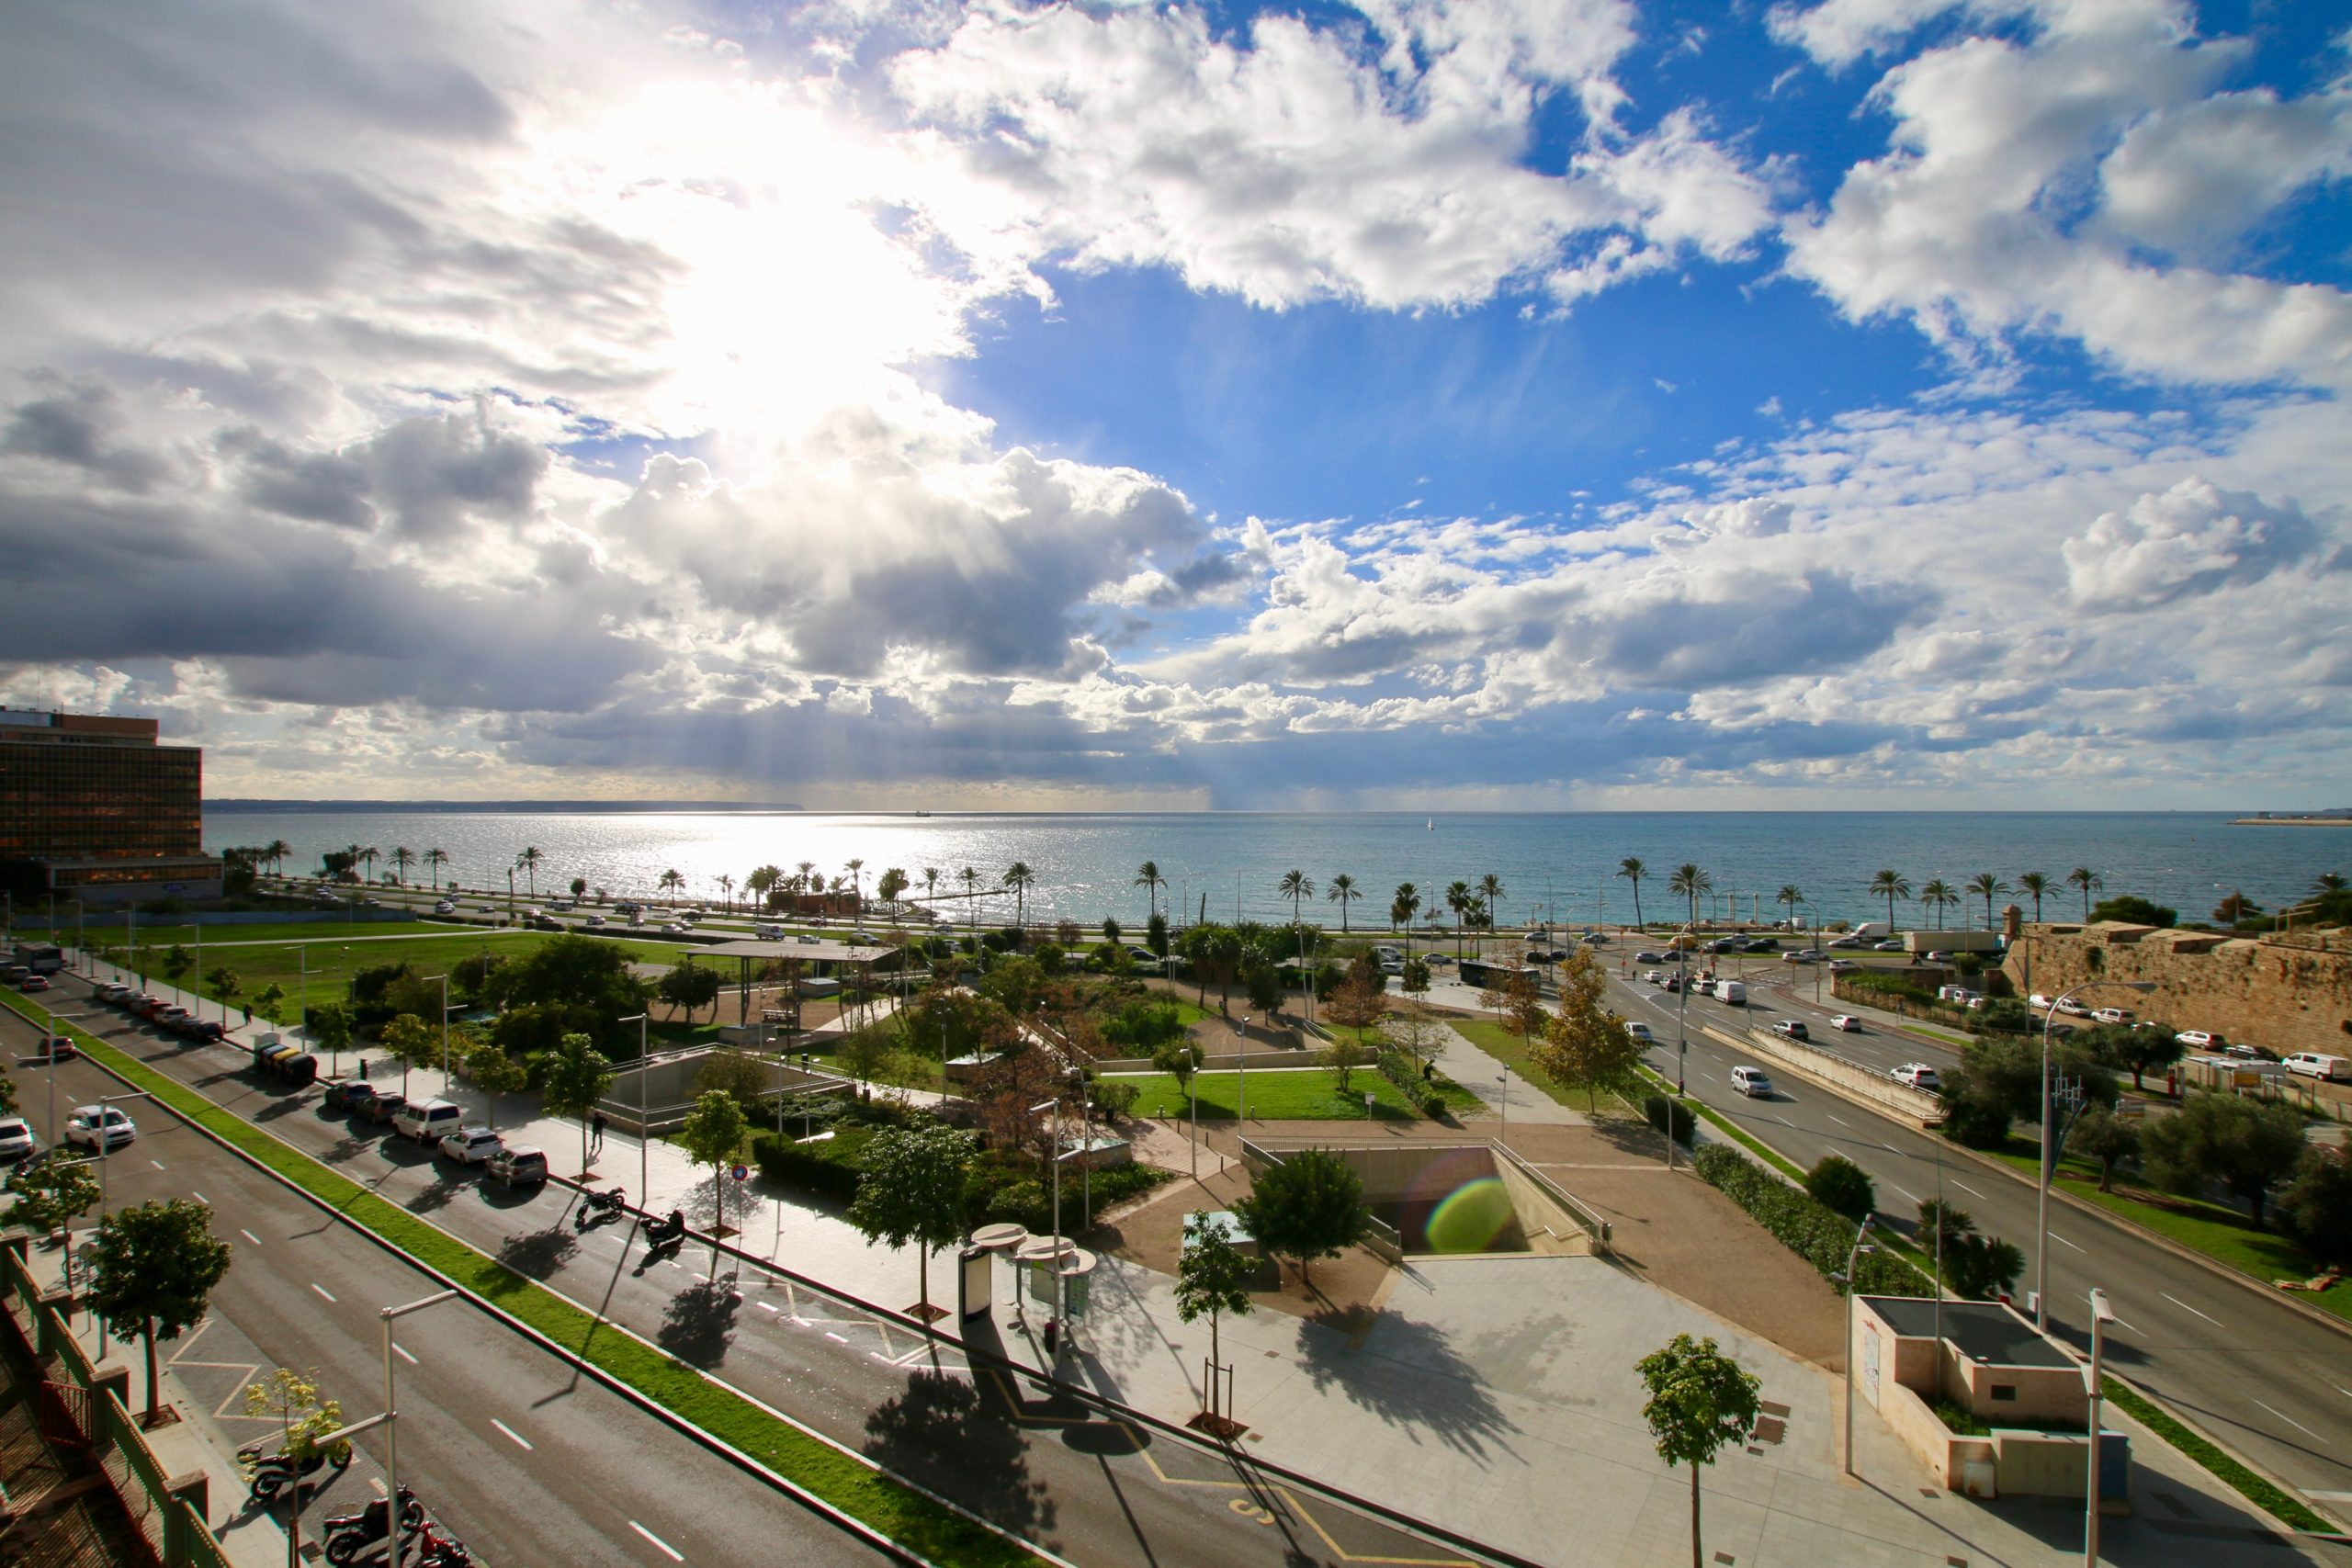 4 beds/ 4 baths penthouse on the beach with amazing views in Palma @ Mallorca